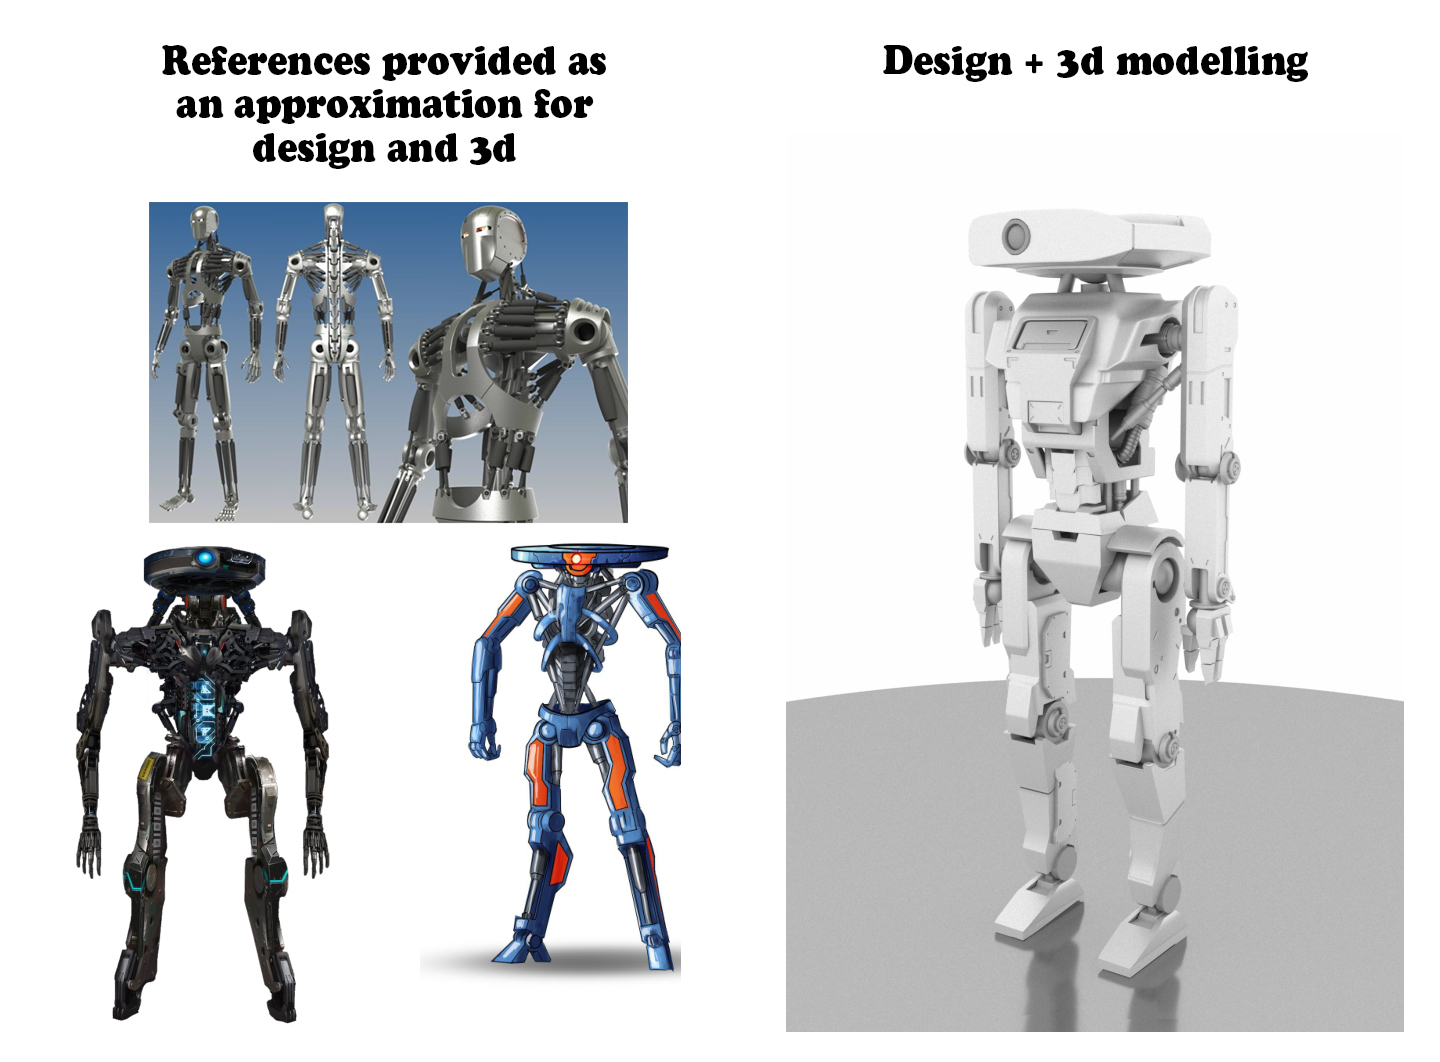 Robot_design_and_modelling